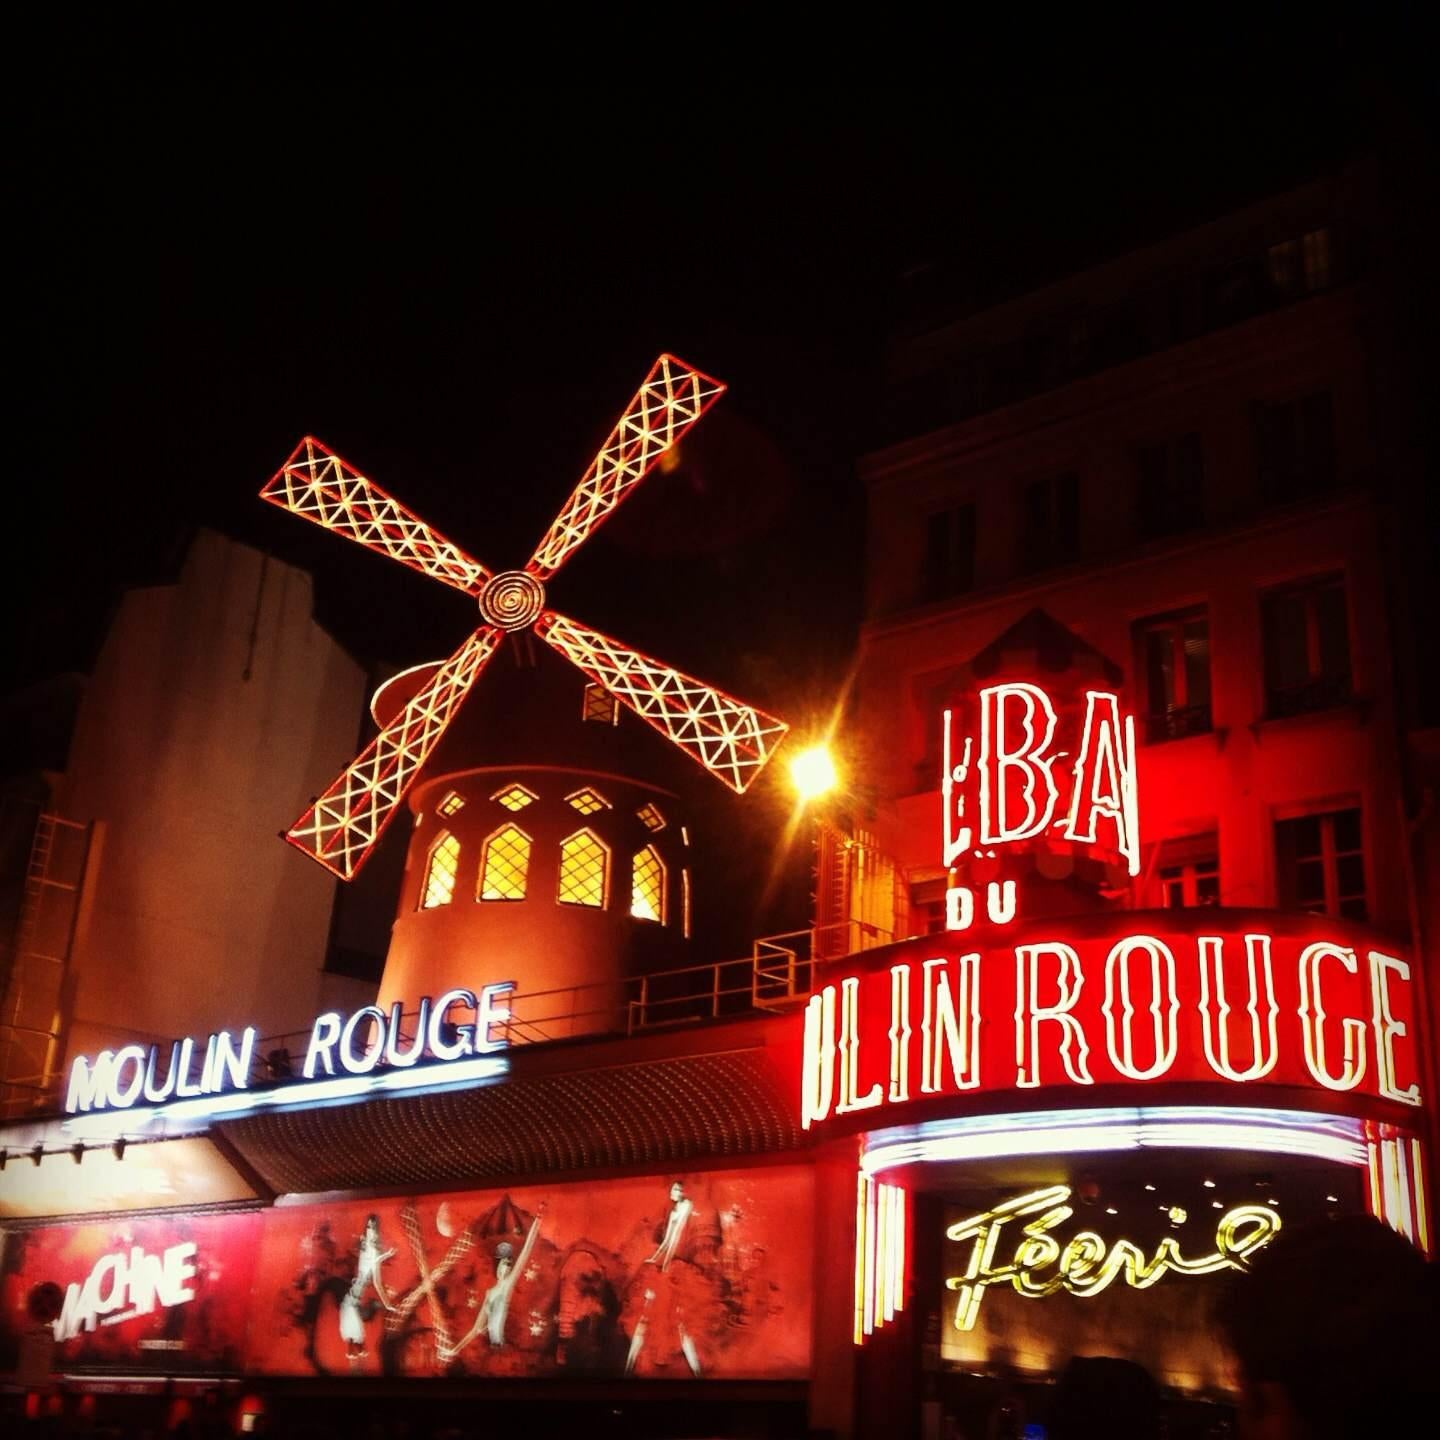 Escenario en Moulin Rouge